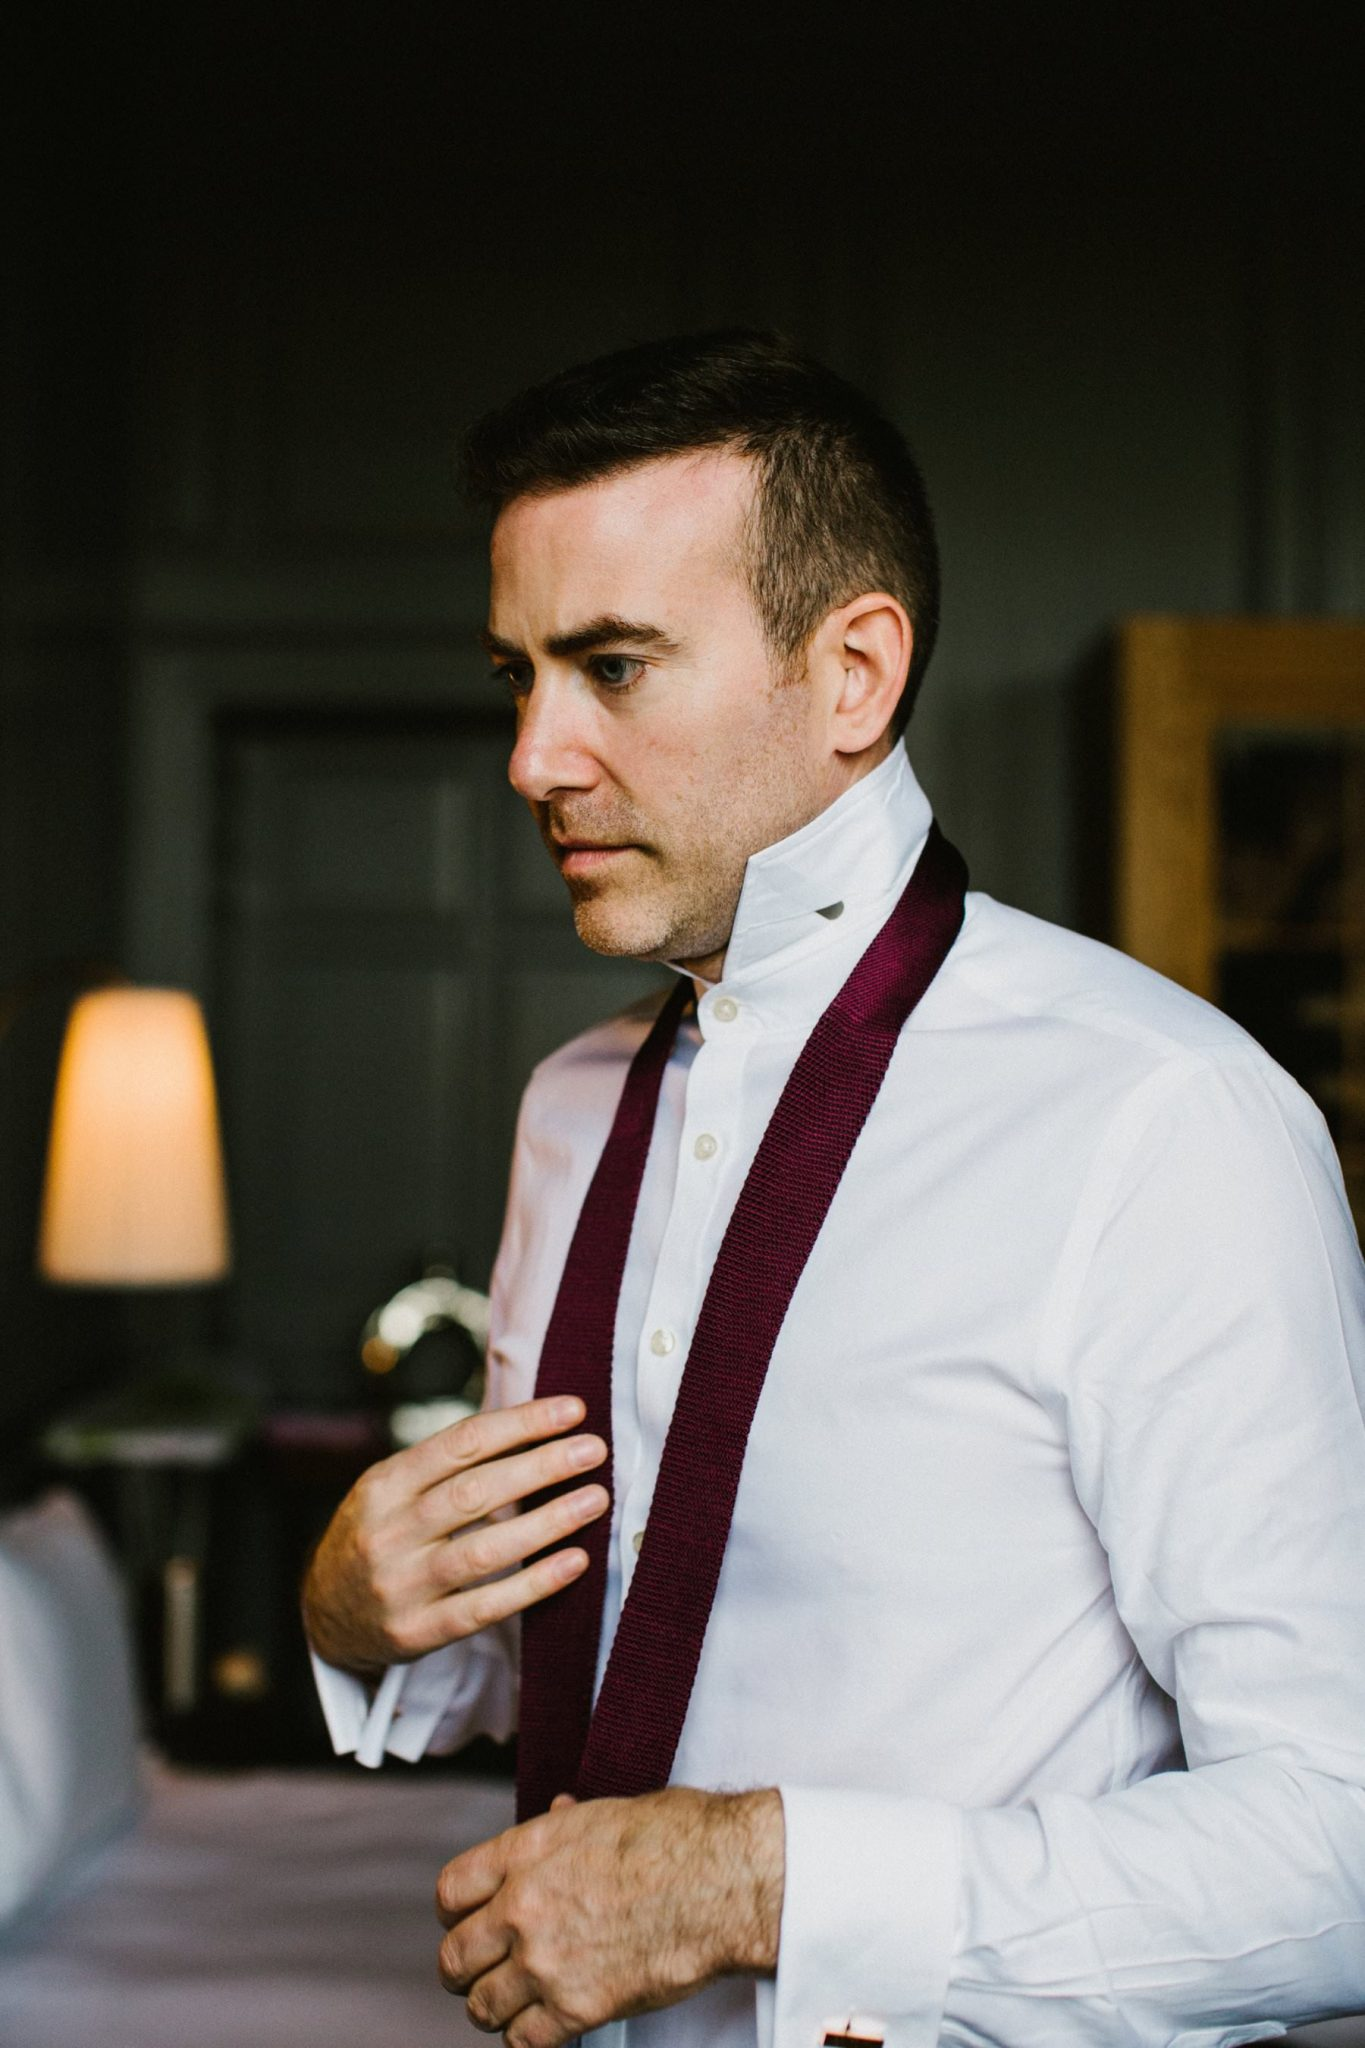 Groom concentrates as he ties his burgundy tie